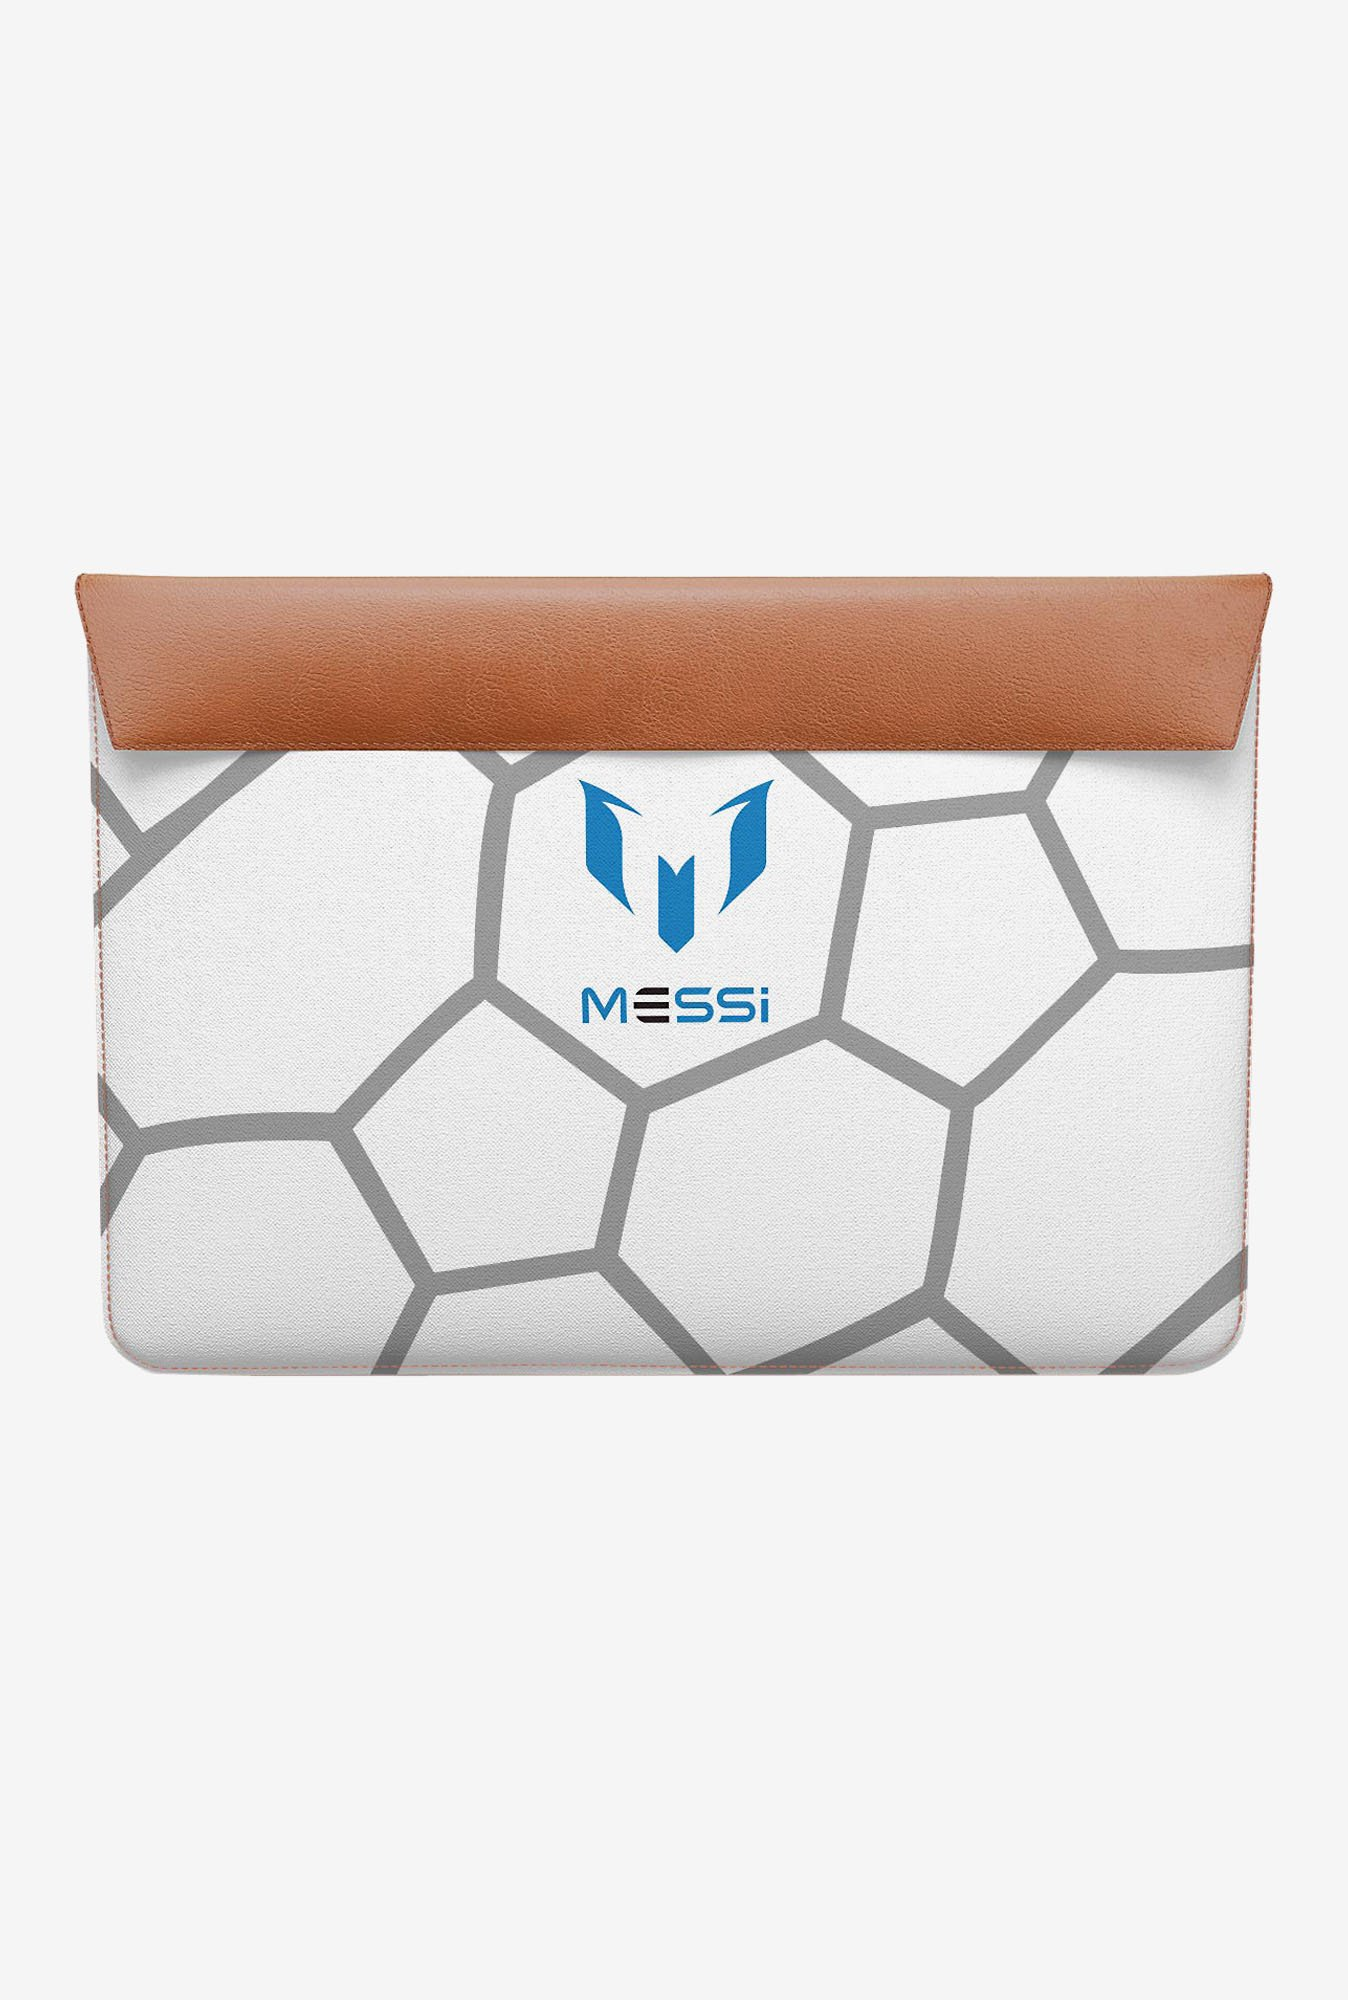 DailyObjects Messi Honeycomb MacBook 12 Envelope Sleeve